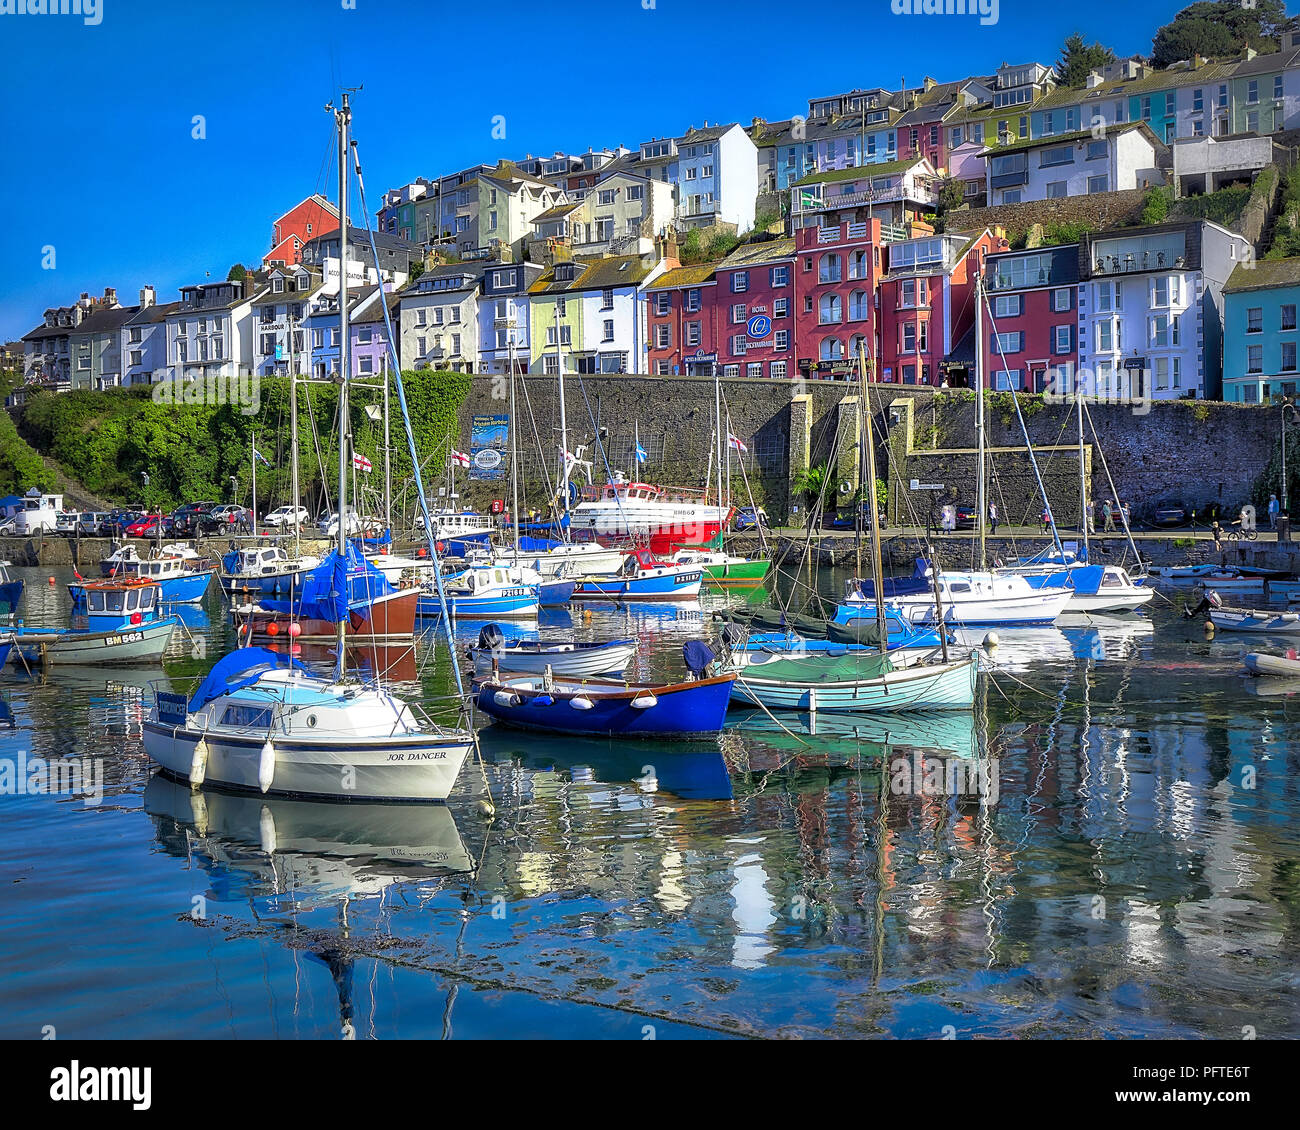 Go - DEVON : Brixham Harbour Photo Stock